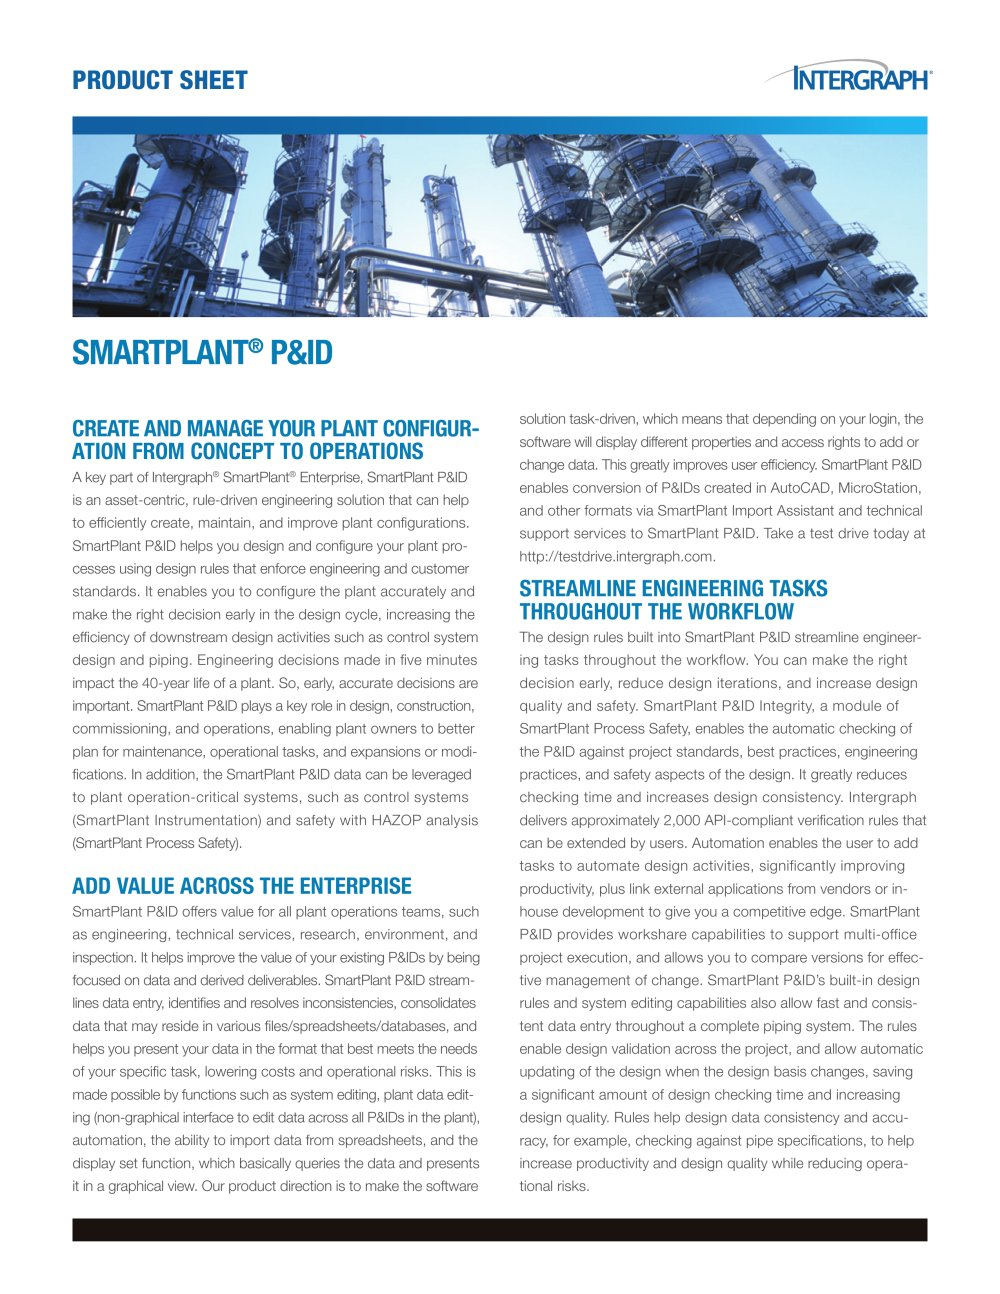 SmartPlant P&ID Product Sheet - 1 / 2 Pages